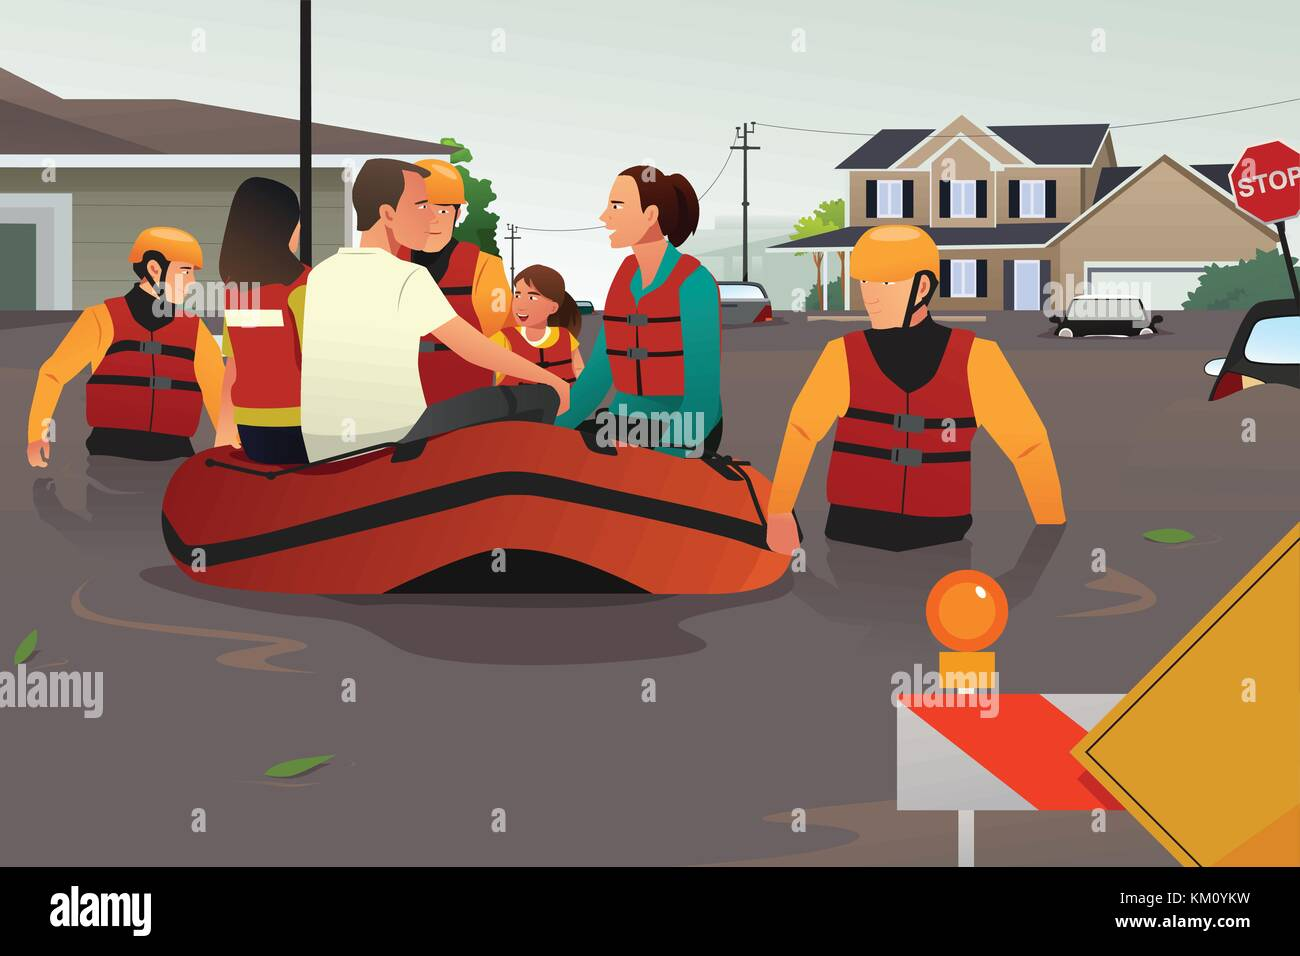 A vector illustration of rescue team helping people by pushing a boat through a flooded road - Stock Vector